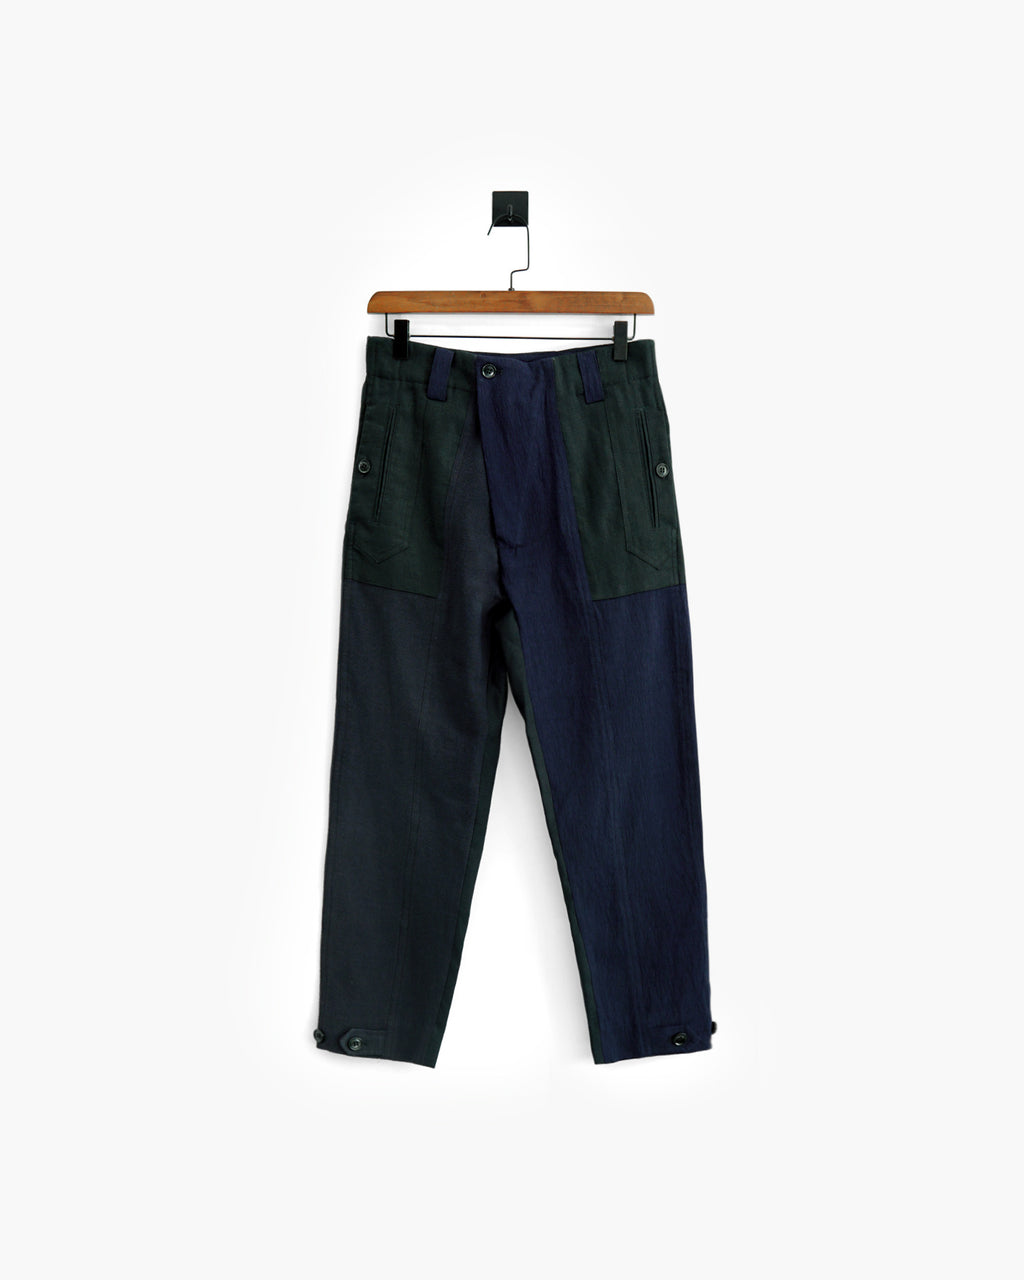 ROSEN Pascal Trousers in Patchwork Linen Sz 1